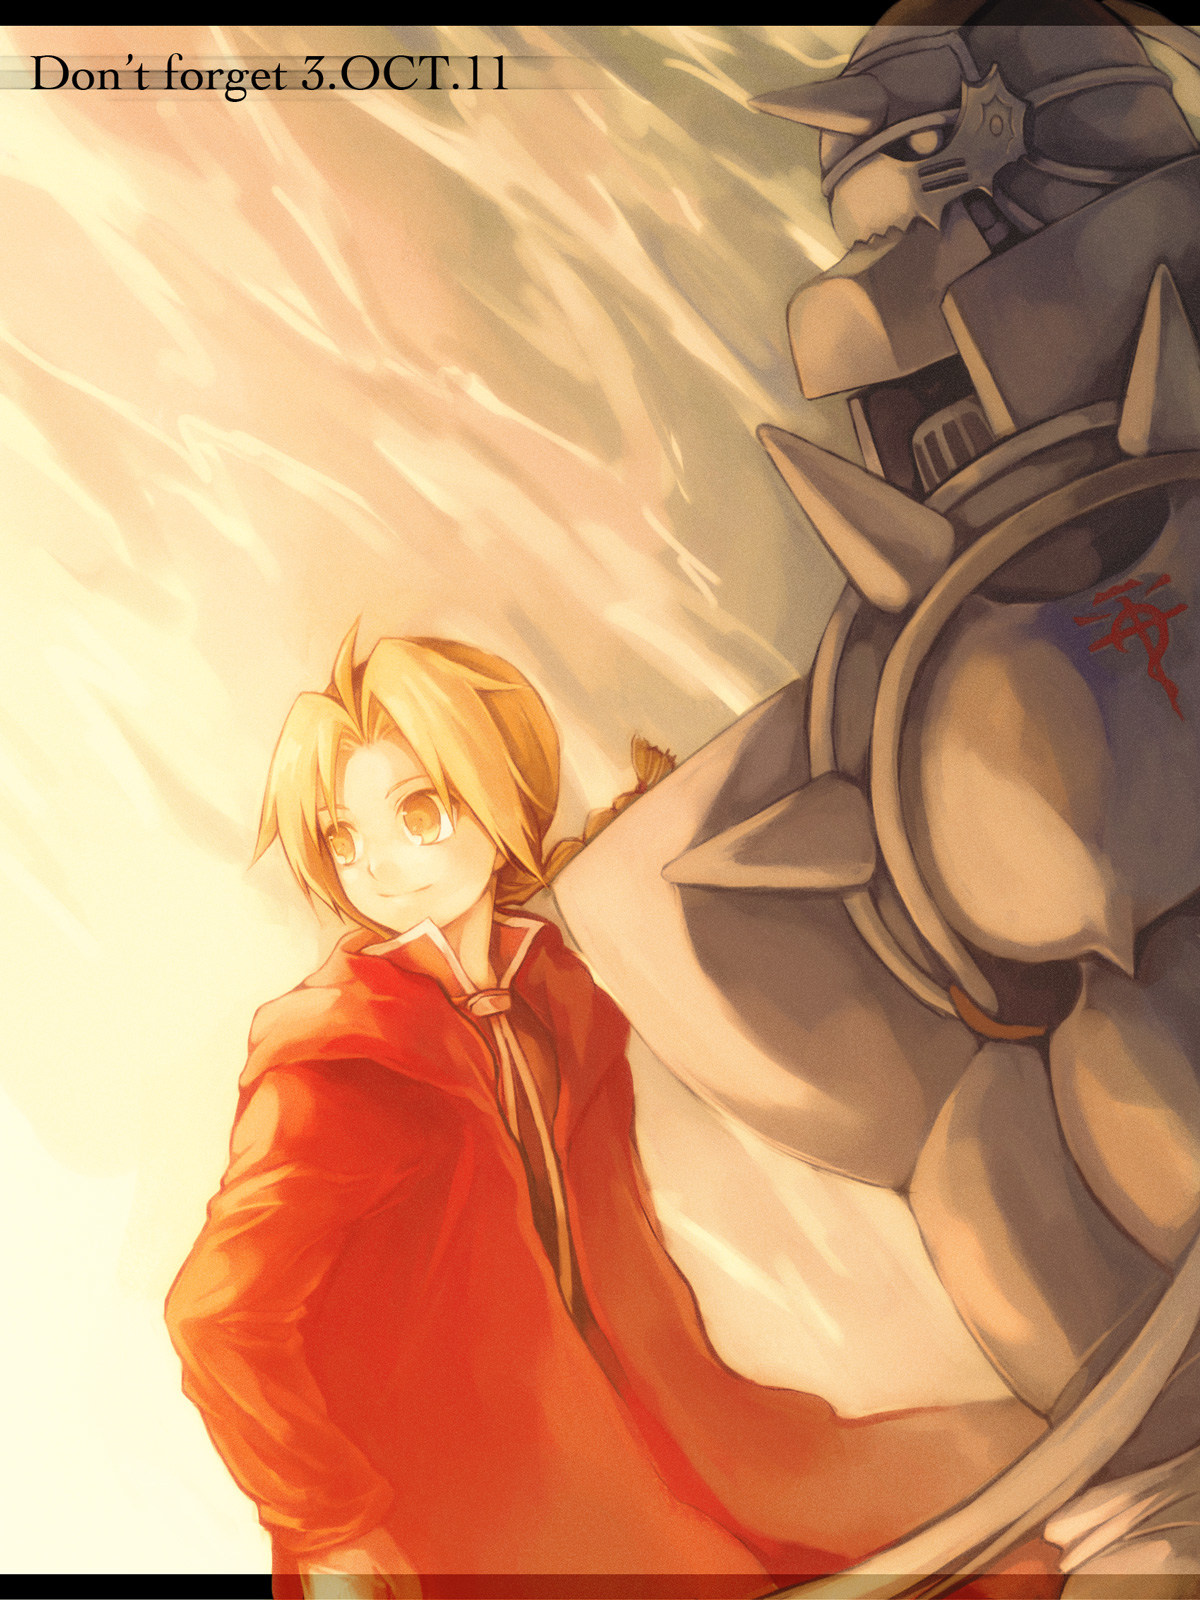 dating edward elric I can tell you riiiight now that anyone who isn't a die-hard edward fangirl is going to find this extremely creepy xd he moans he groans he sounds incredibly suggestive he does it all, and with minimal provoking all for the low, low price of an arm and a leg what.